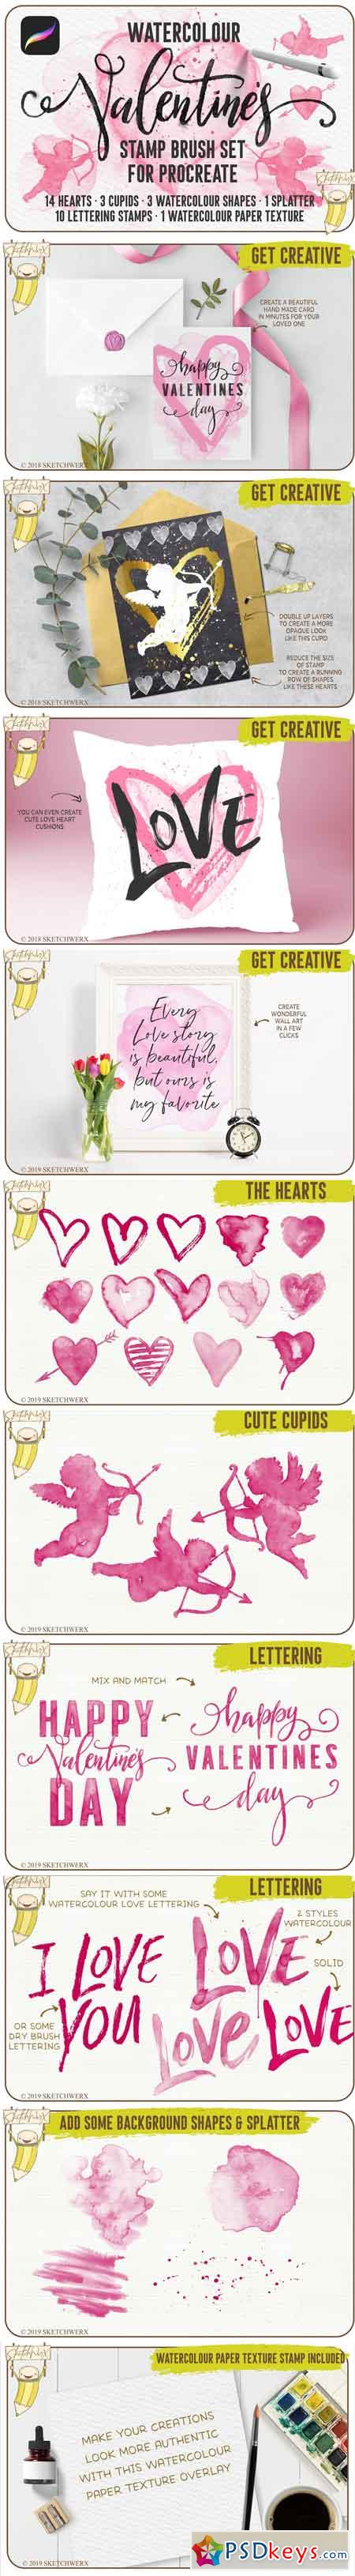 Watercolour Valentines Stamp Set 3378623